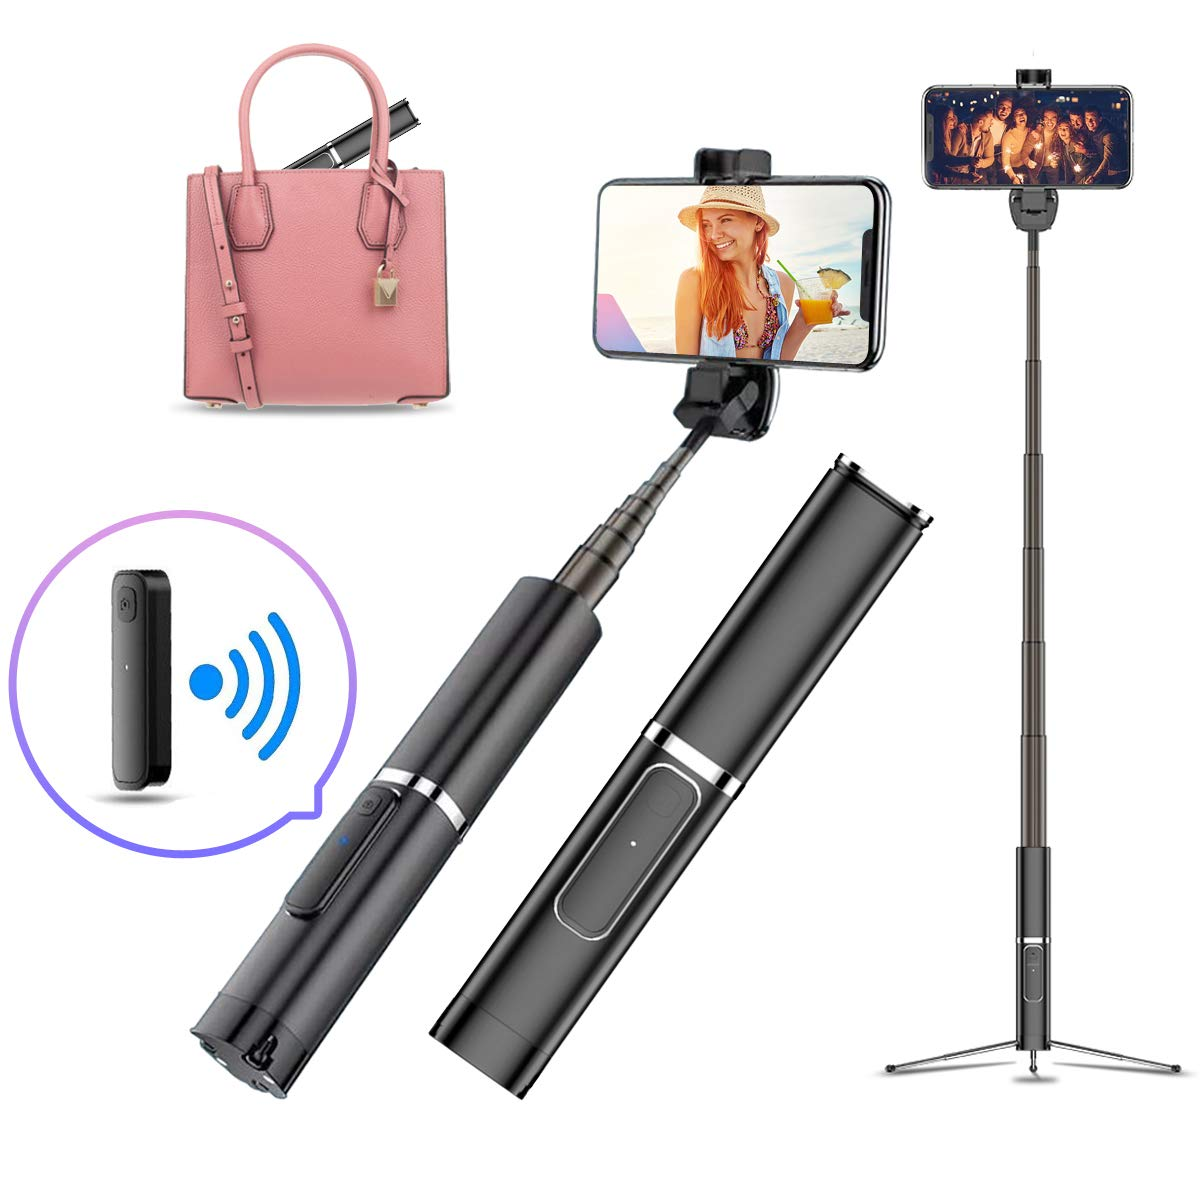 INNOLI Selfie Stick Tripod,Mini Pocket Retractable Bluetooth Wireless Remote Control Zinc Alloy Cell Phone Tripods for iPhone 11 11 Pro Xs Max Xr X 8Plus 7,Samsung Galaxy S10 S9 and More